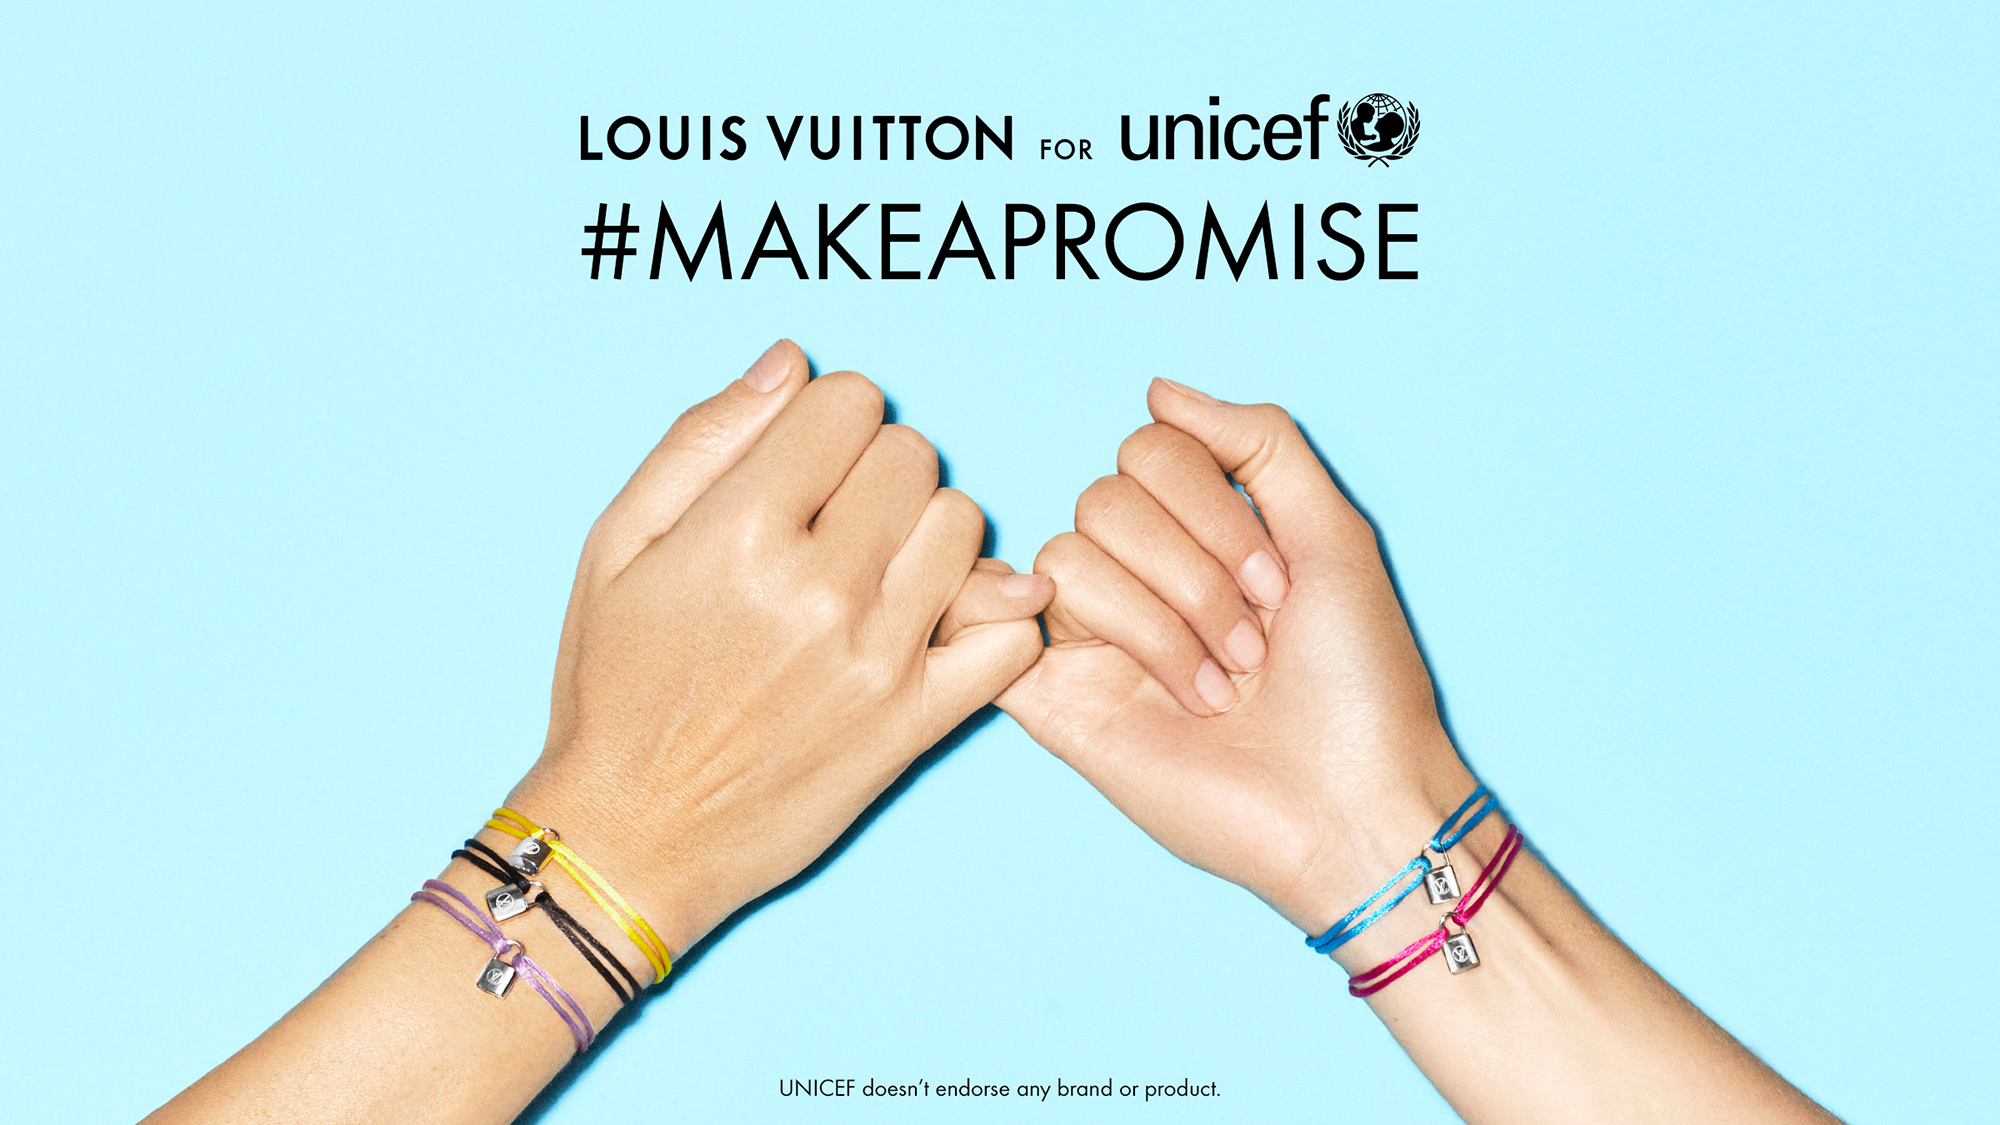 「LOUIS VUITTON for UNICEF」